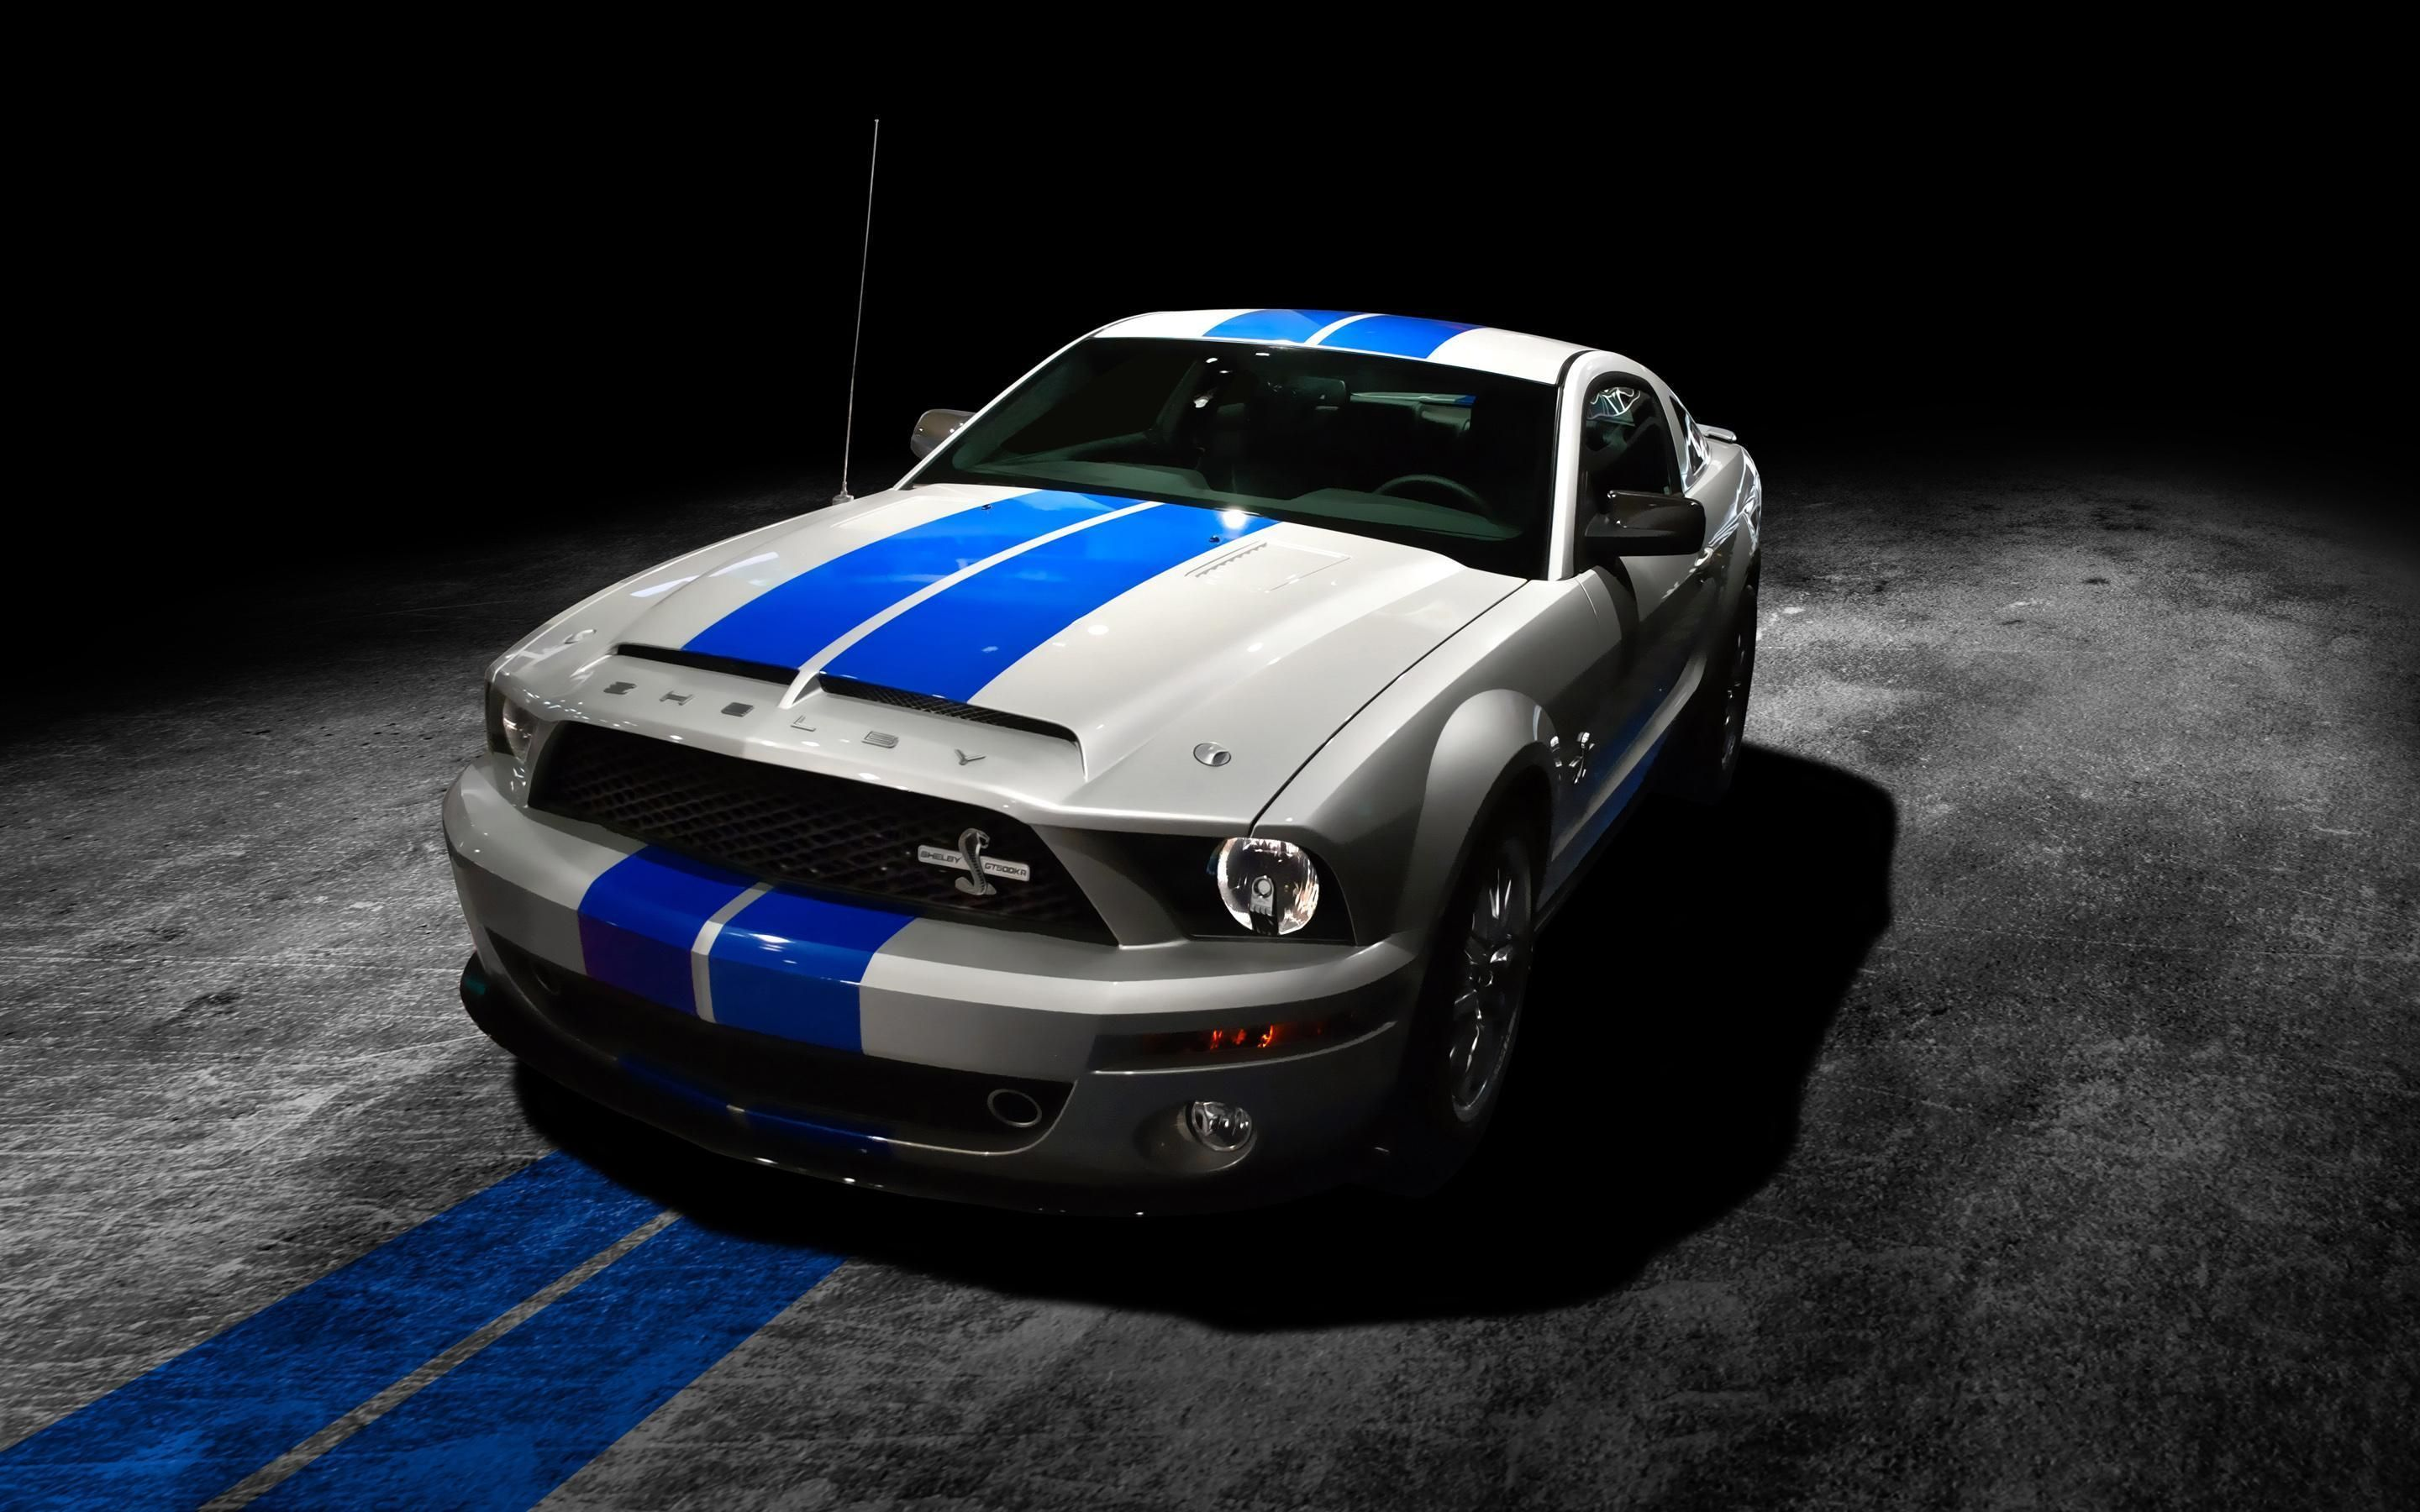 Ford Mustang Shelby Gt500 Car Ford Gt500 Mustang Shelby